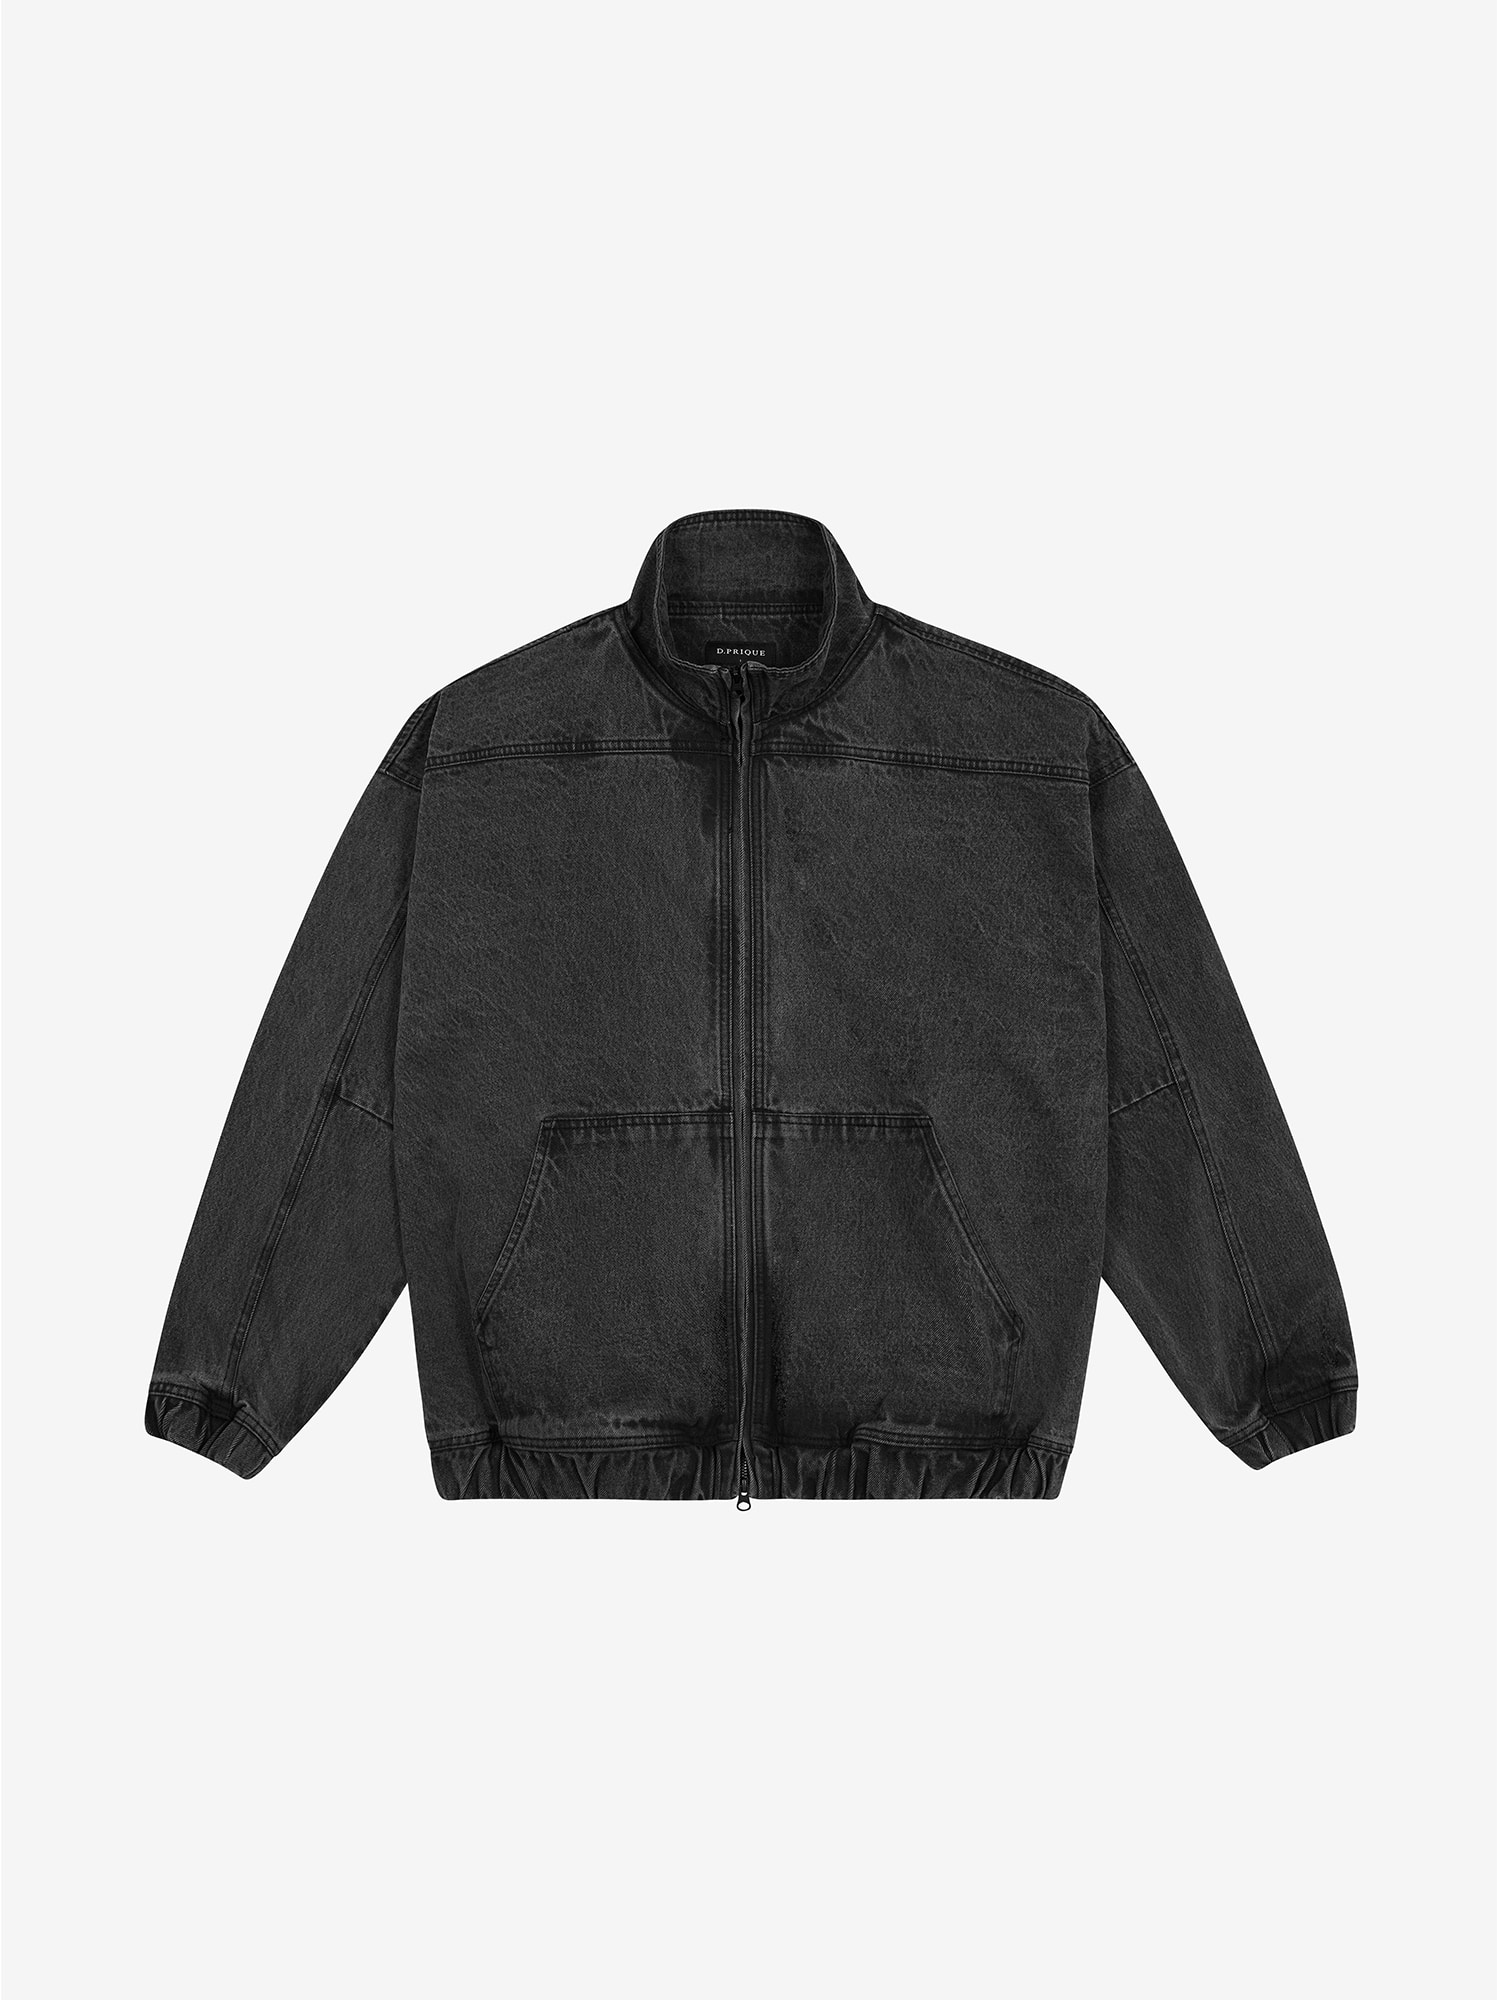 PANEL ZIP-UP JACKET - Grey